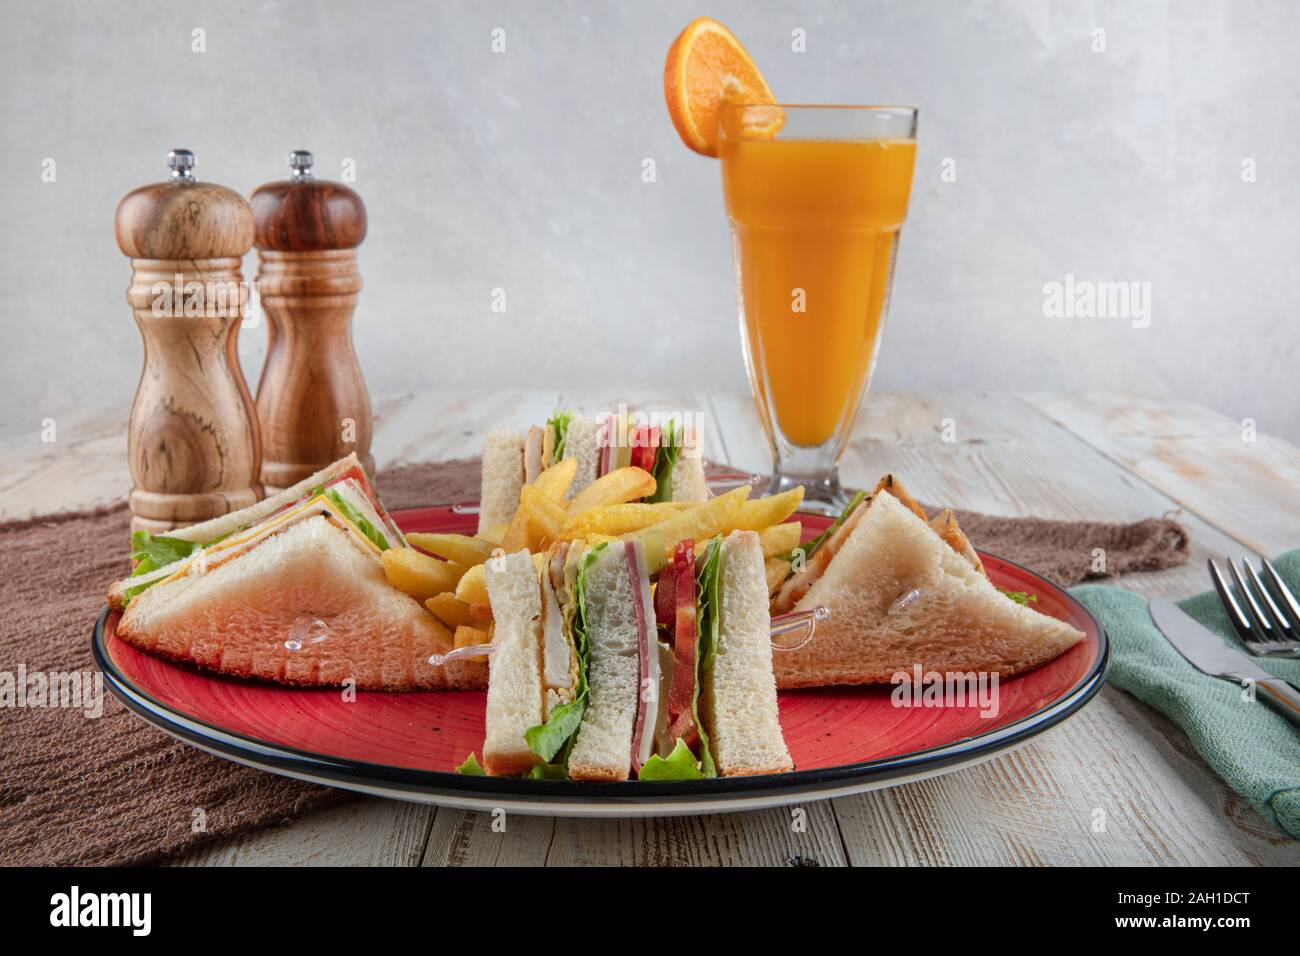 American Foods - Classic Club Sandwich with French Fries.  Club sandwich restaurant concept. Stock Photo